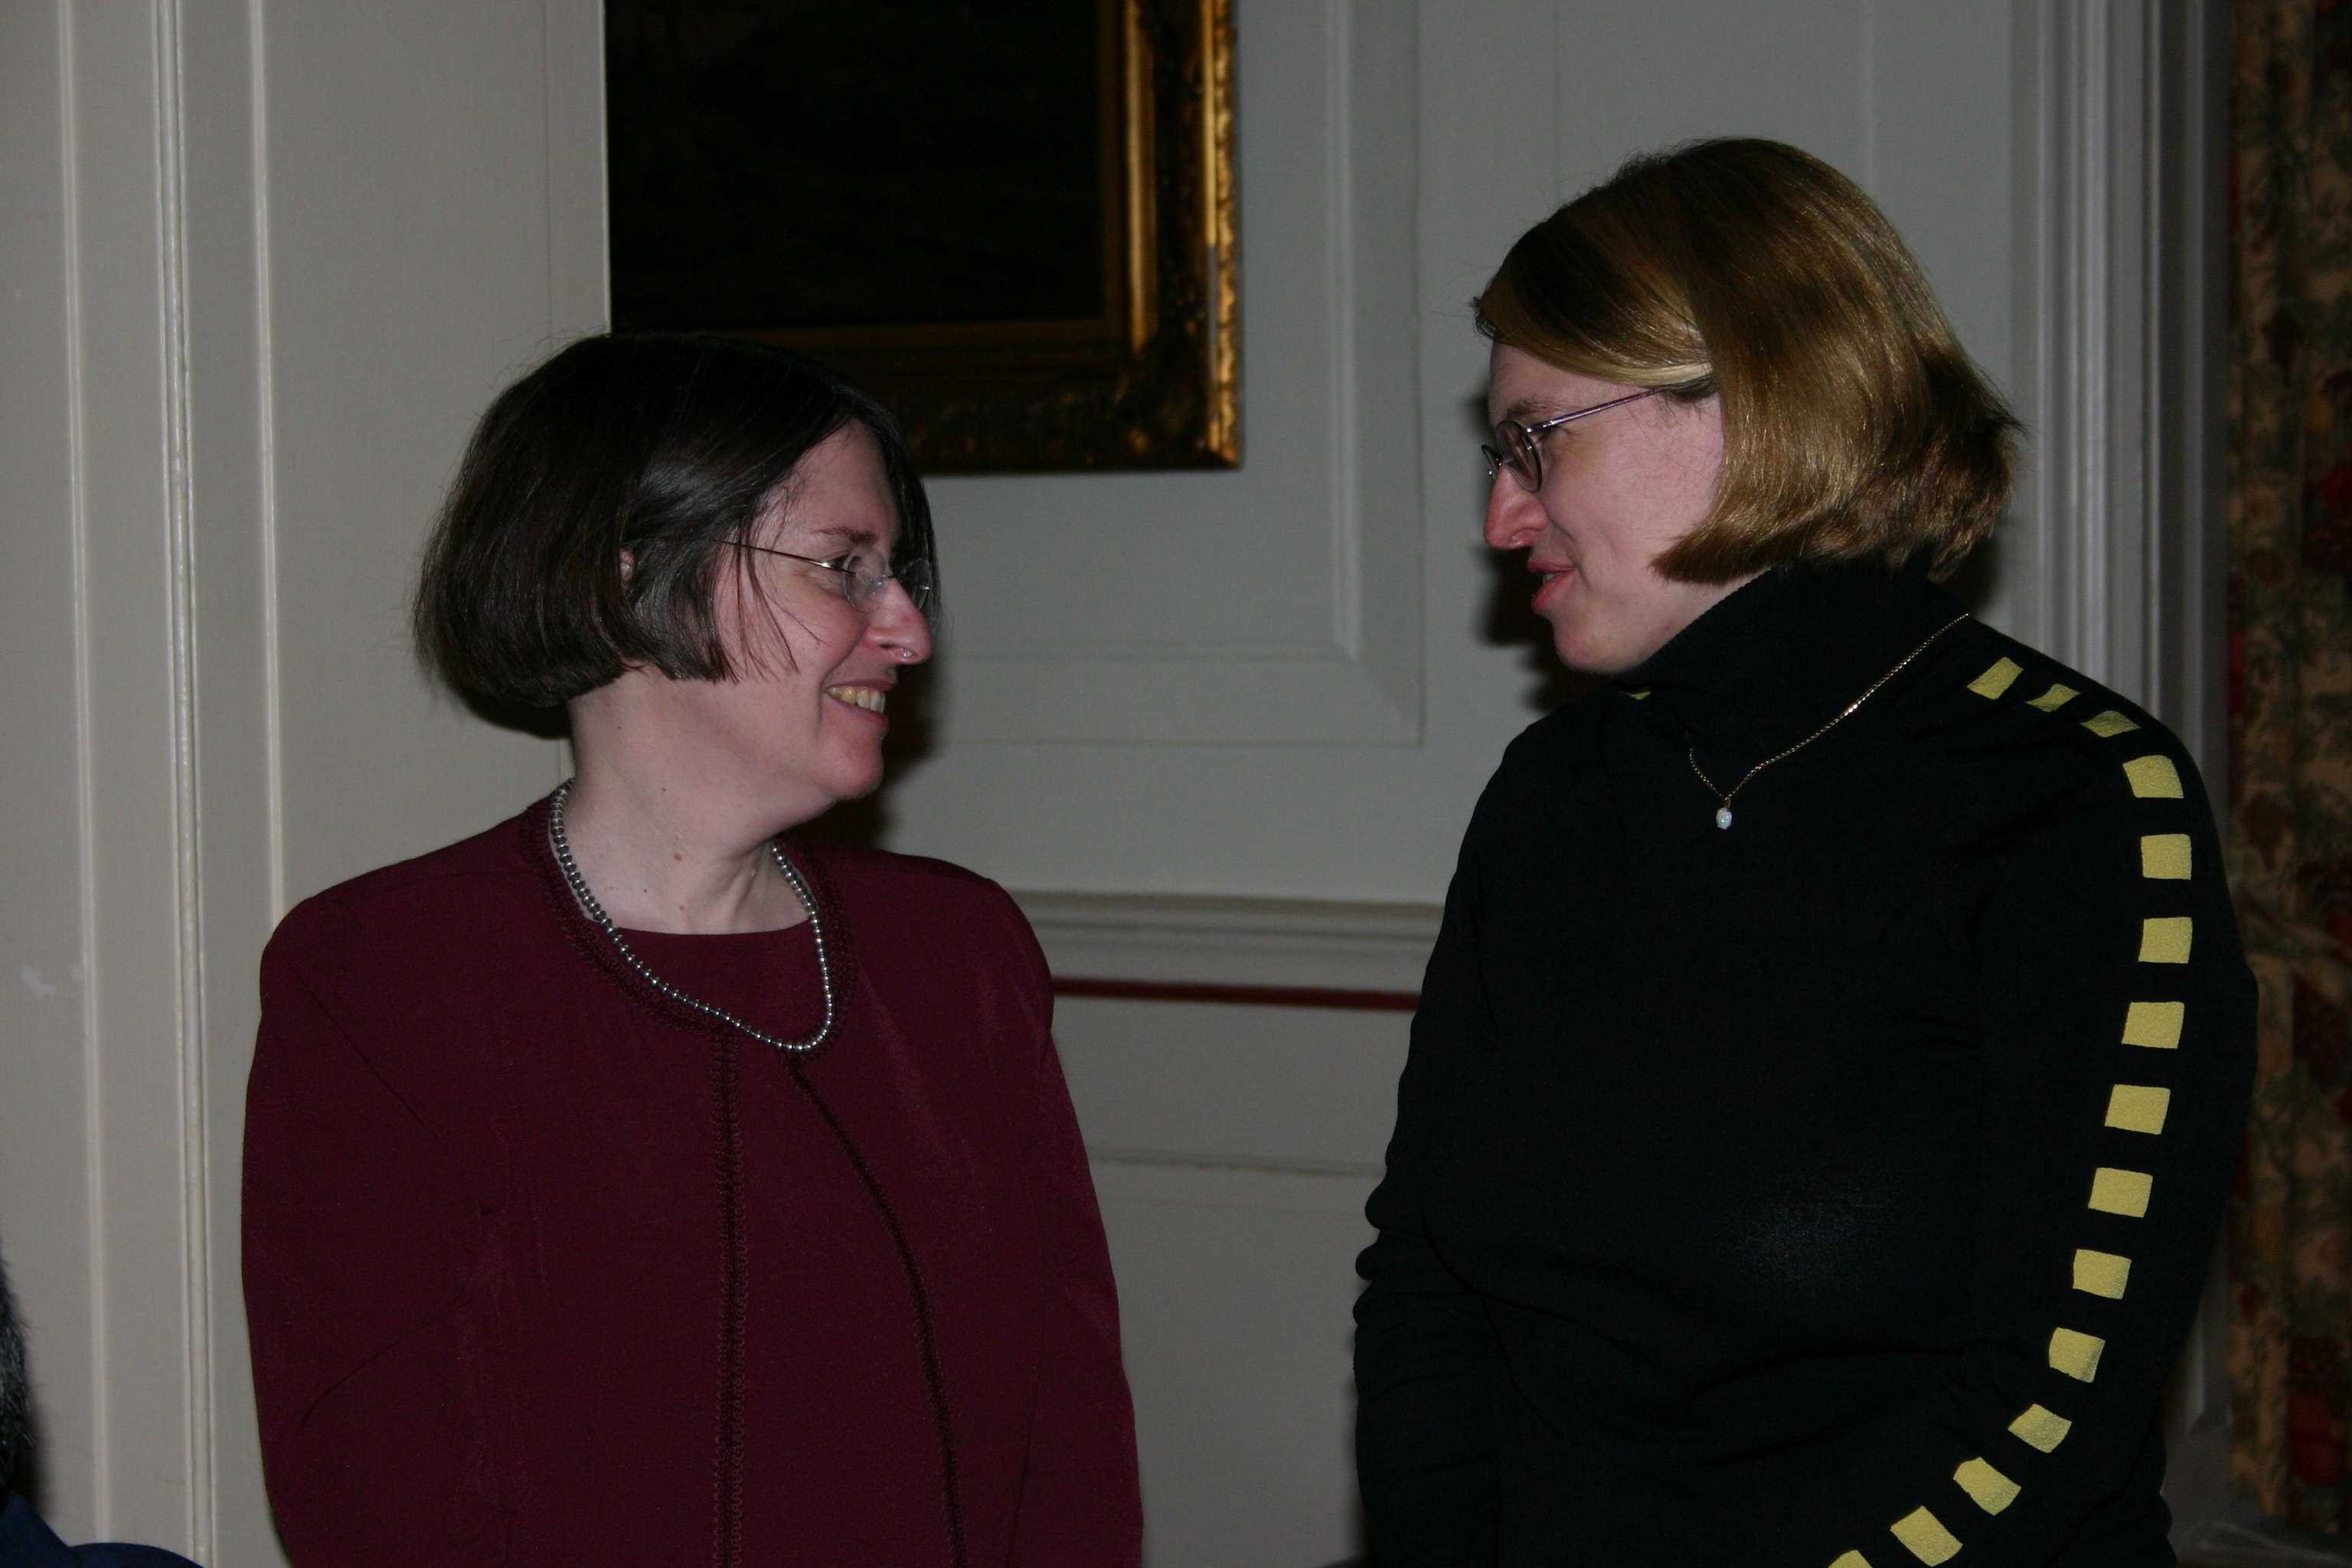 YLS Prof. and Center Dir. Roberta Romano '80 and Alison Gregory